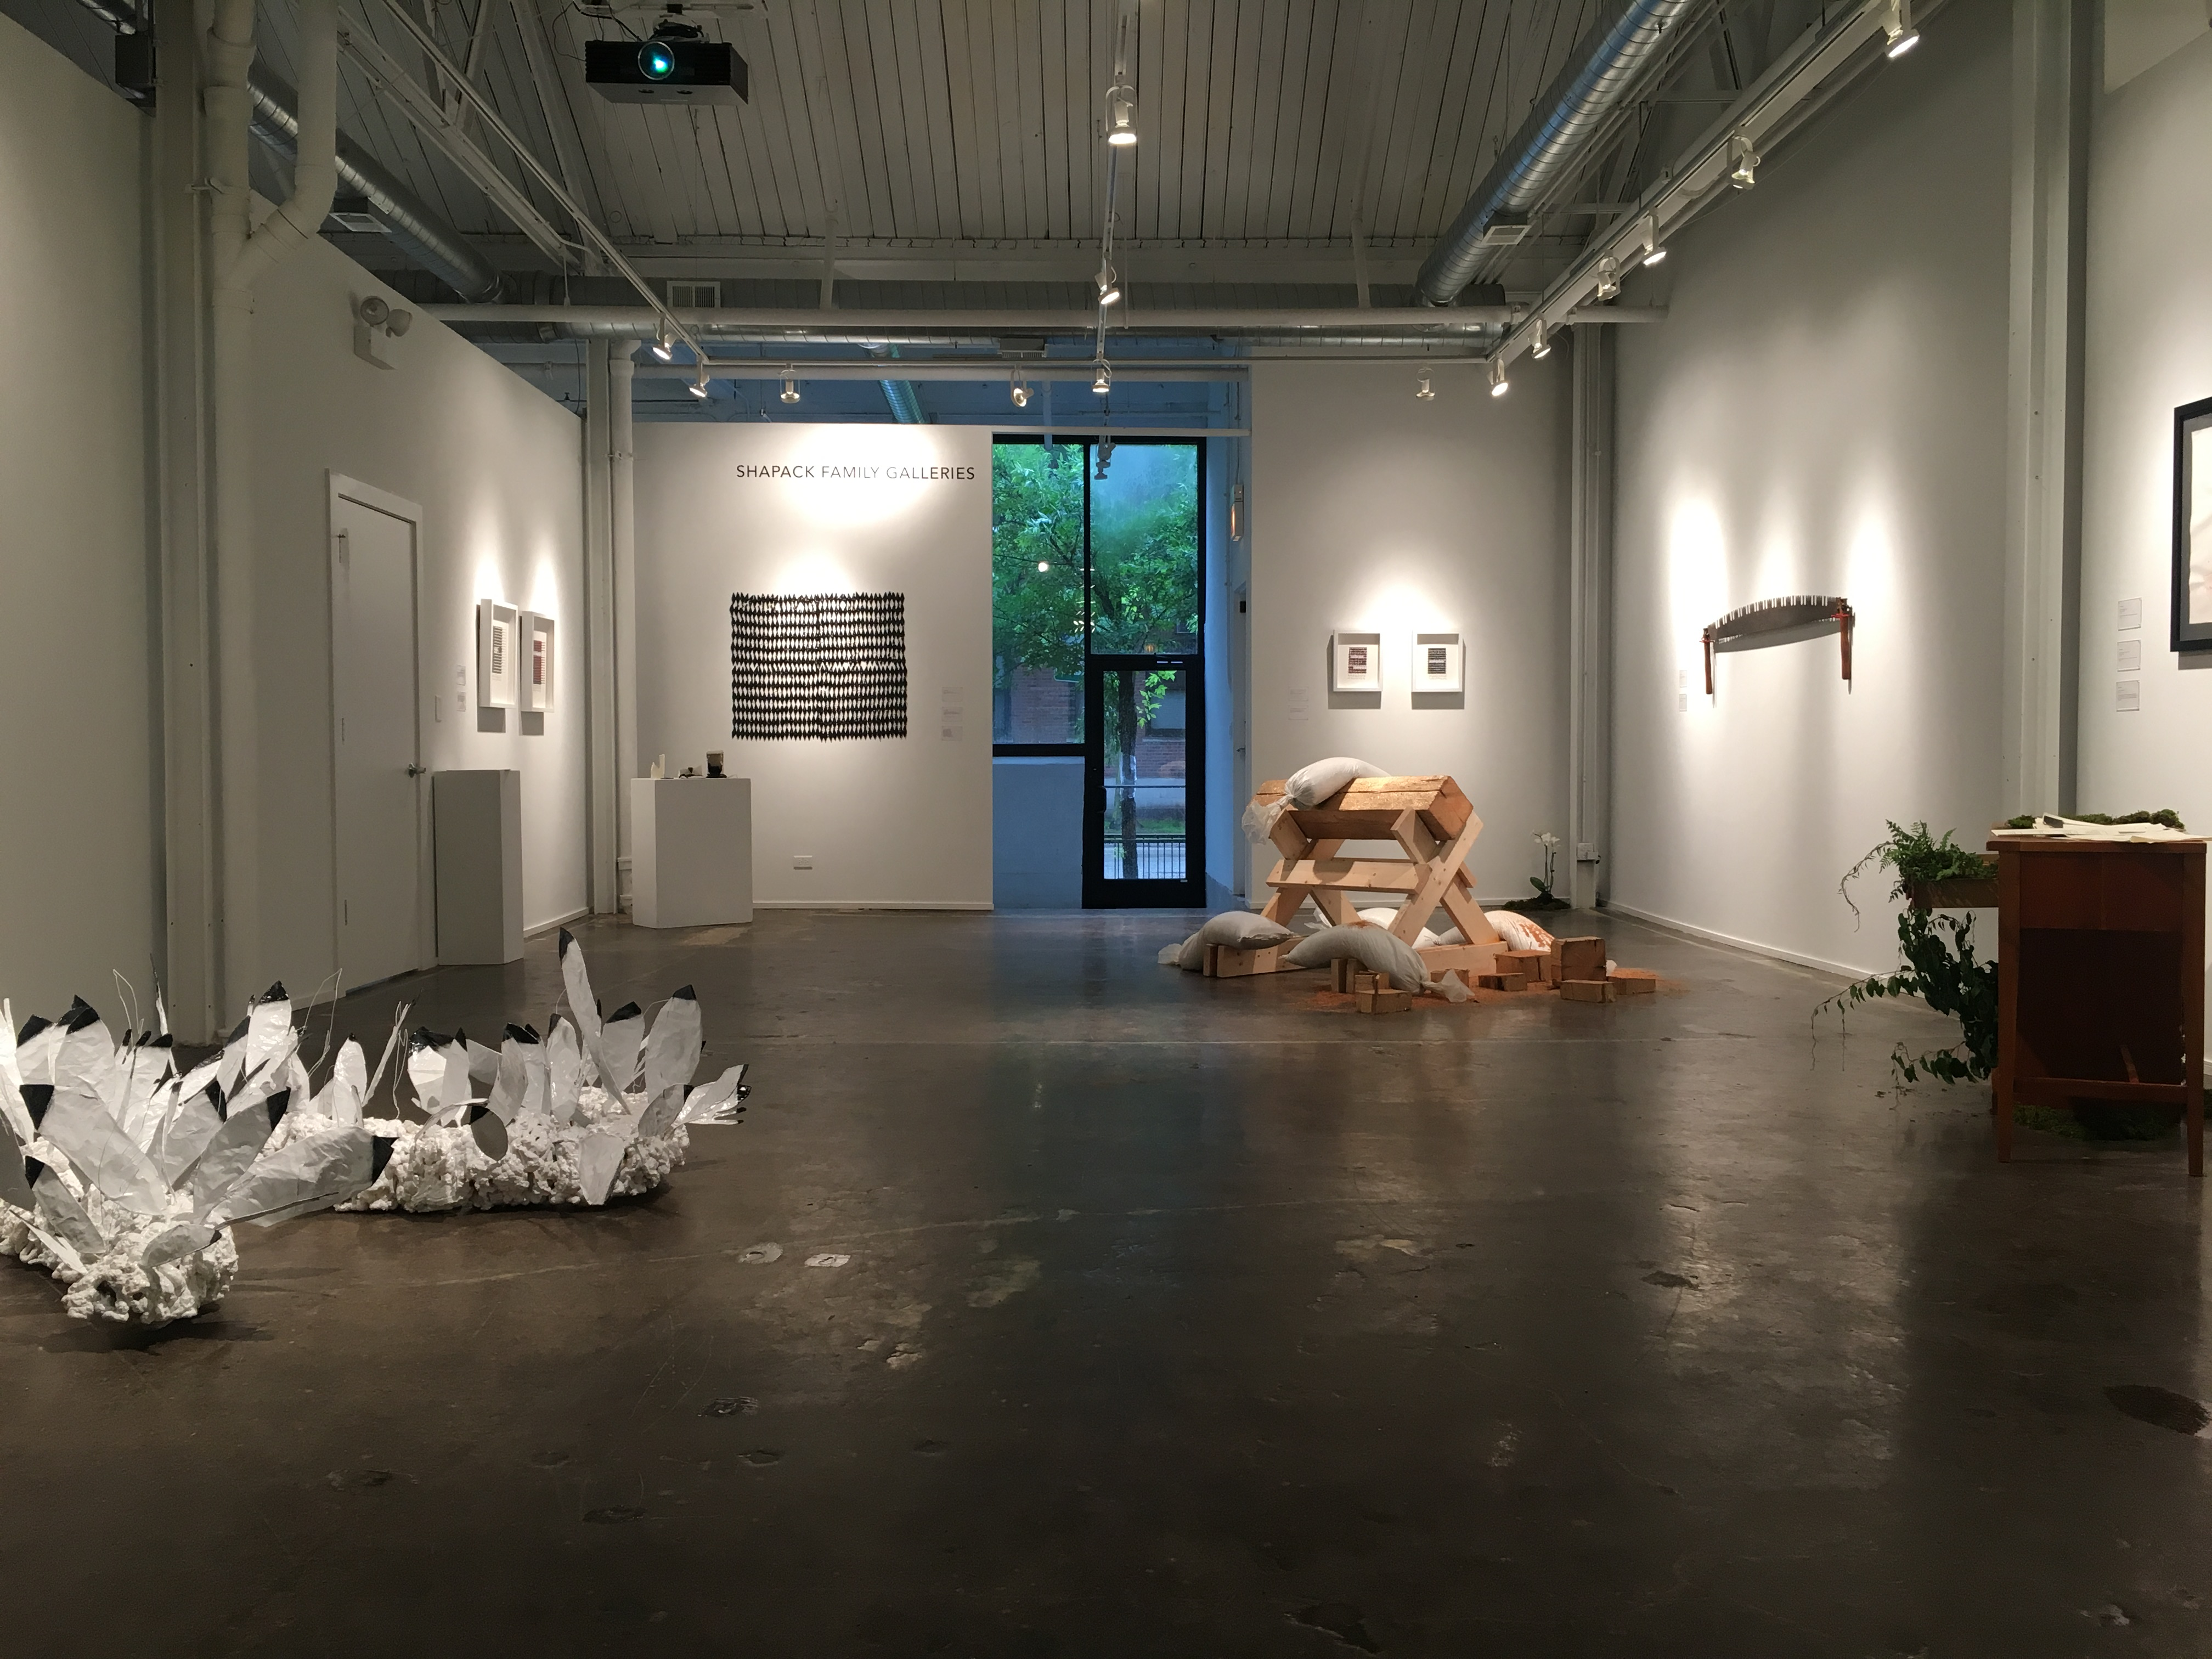 Image: A gallery view of the Shapack Family Galleries. A few pieces or work hang from the white walls as spotlights point in their direction. A few larger pieces are displayed on the concrete gallery floor. Straight ahead, a leafy green tree can be seen outside through the glass door that acts as entrance to the Chicago Artists Coalition building and the gallery space. Photo Courtesy of Chicago Artists Coalition.